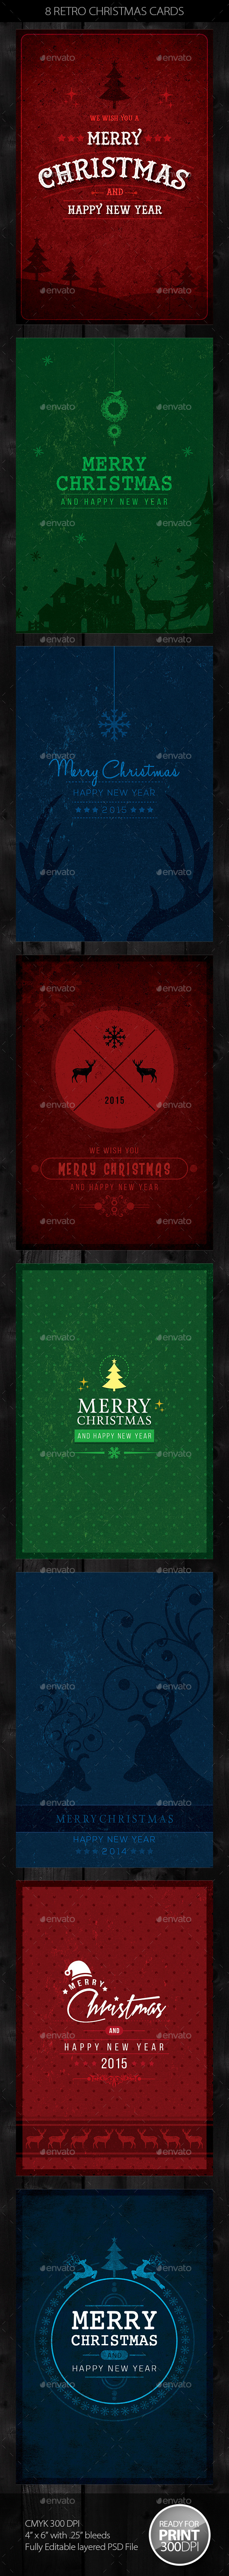 GraphicRiver 8 Retro Christmas Cards Invite 9589647